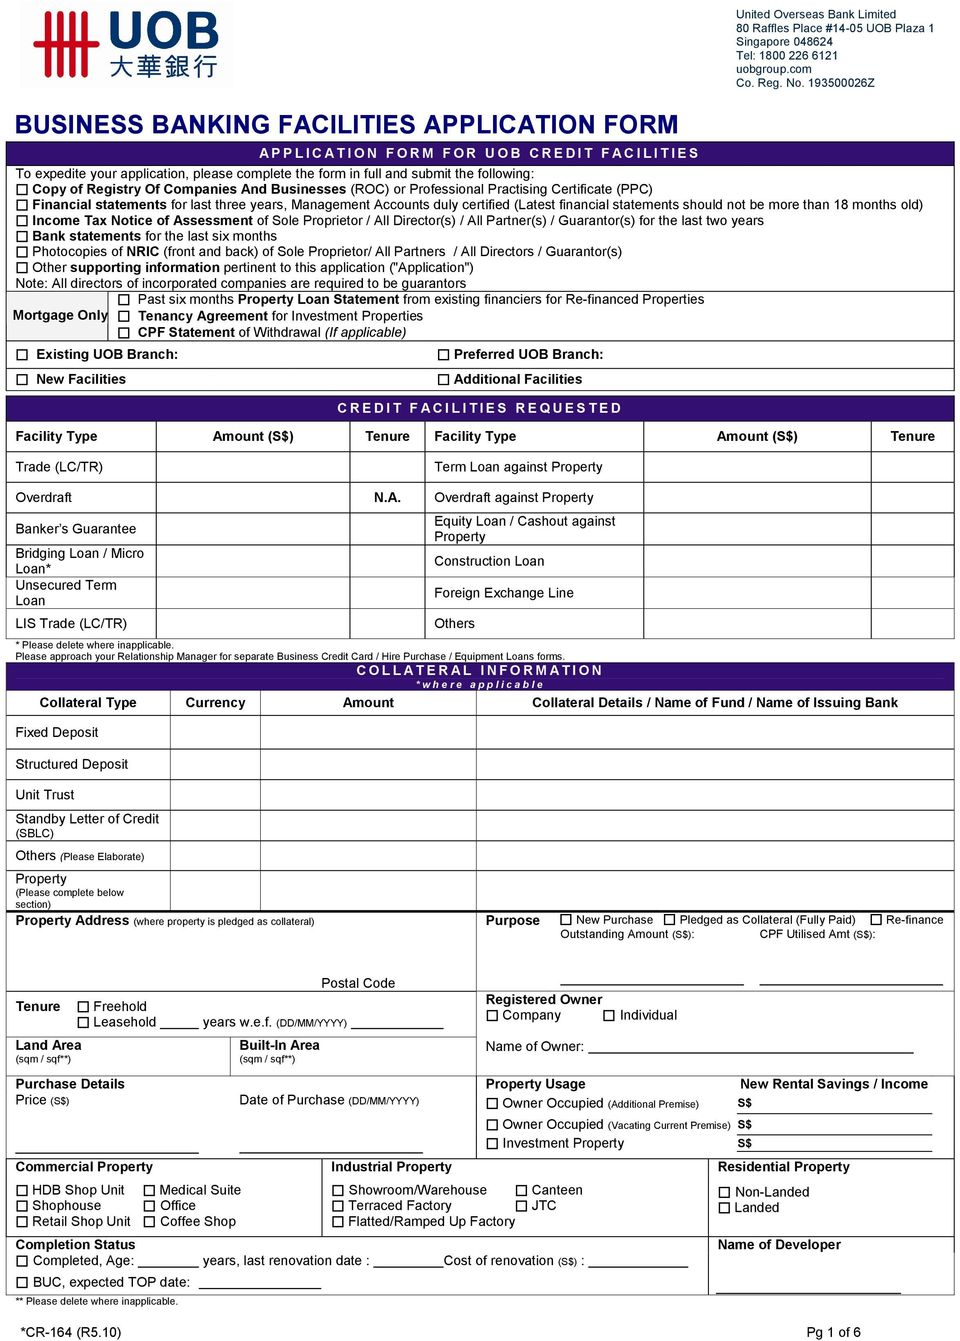 BUSINESS BANKING FACILITIES APPLICATION FORM - PDF